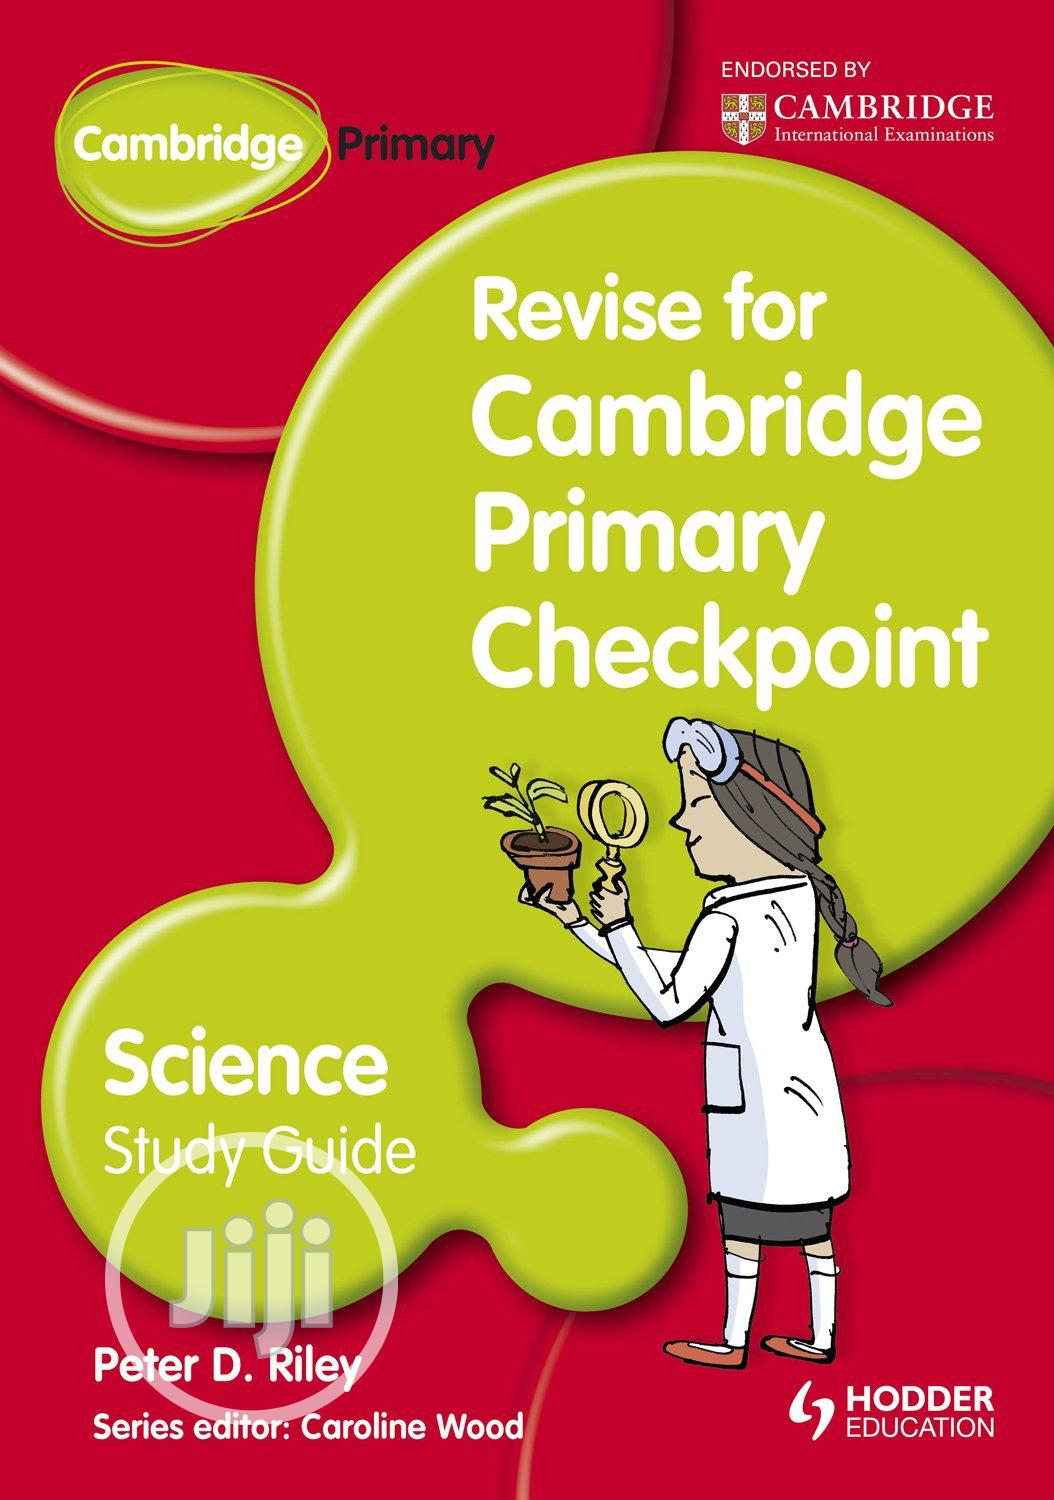 Revise for Cambridge Primary Checkpoint Science Study Guide